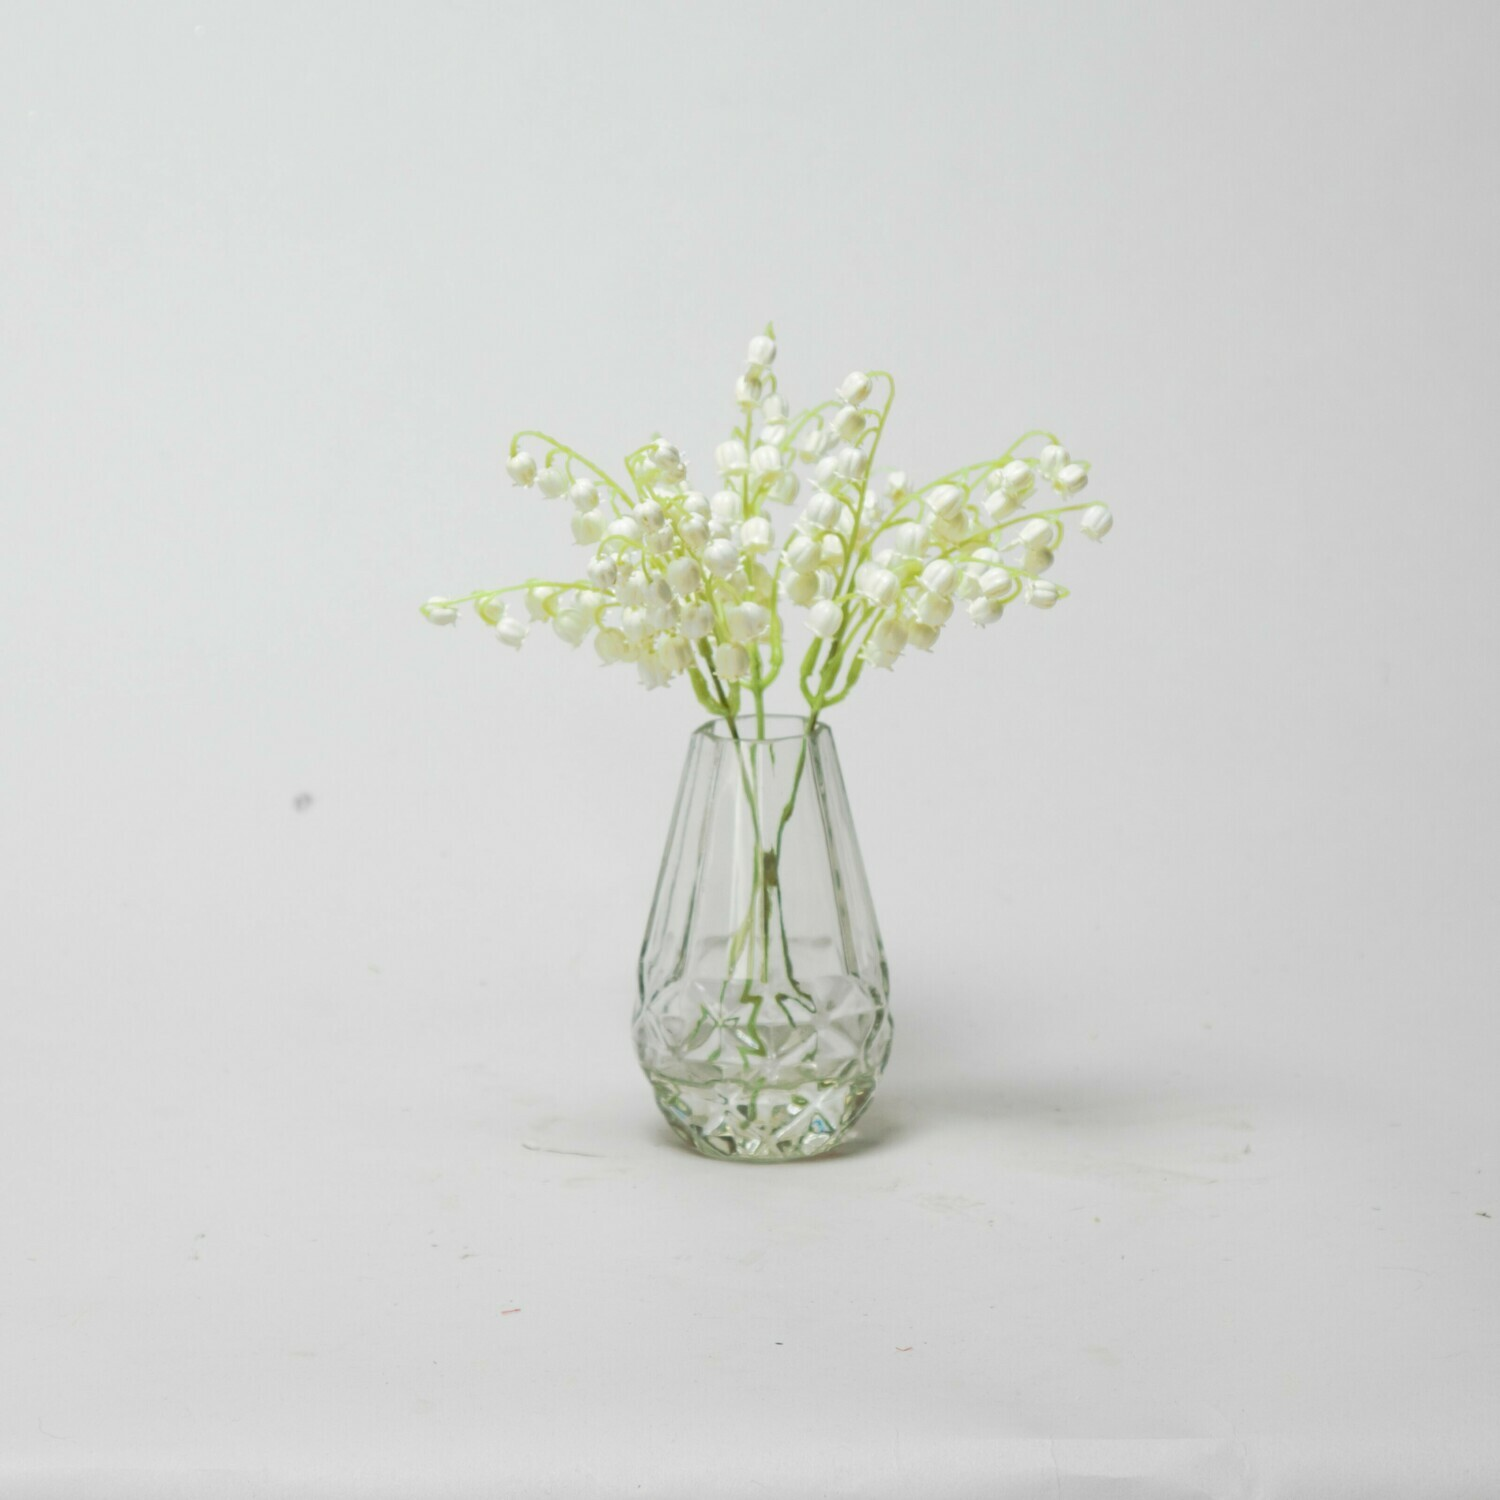 Lily of the Valley in a cut glass bud vase